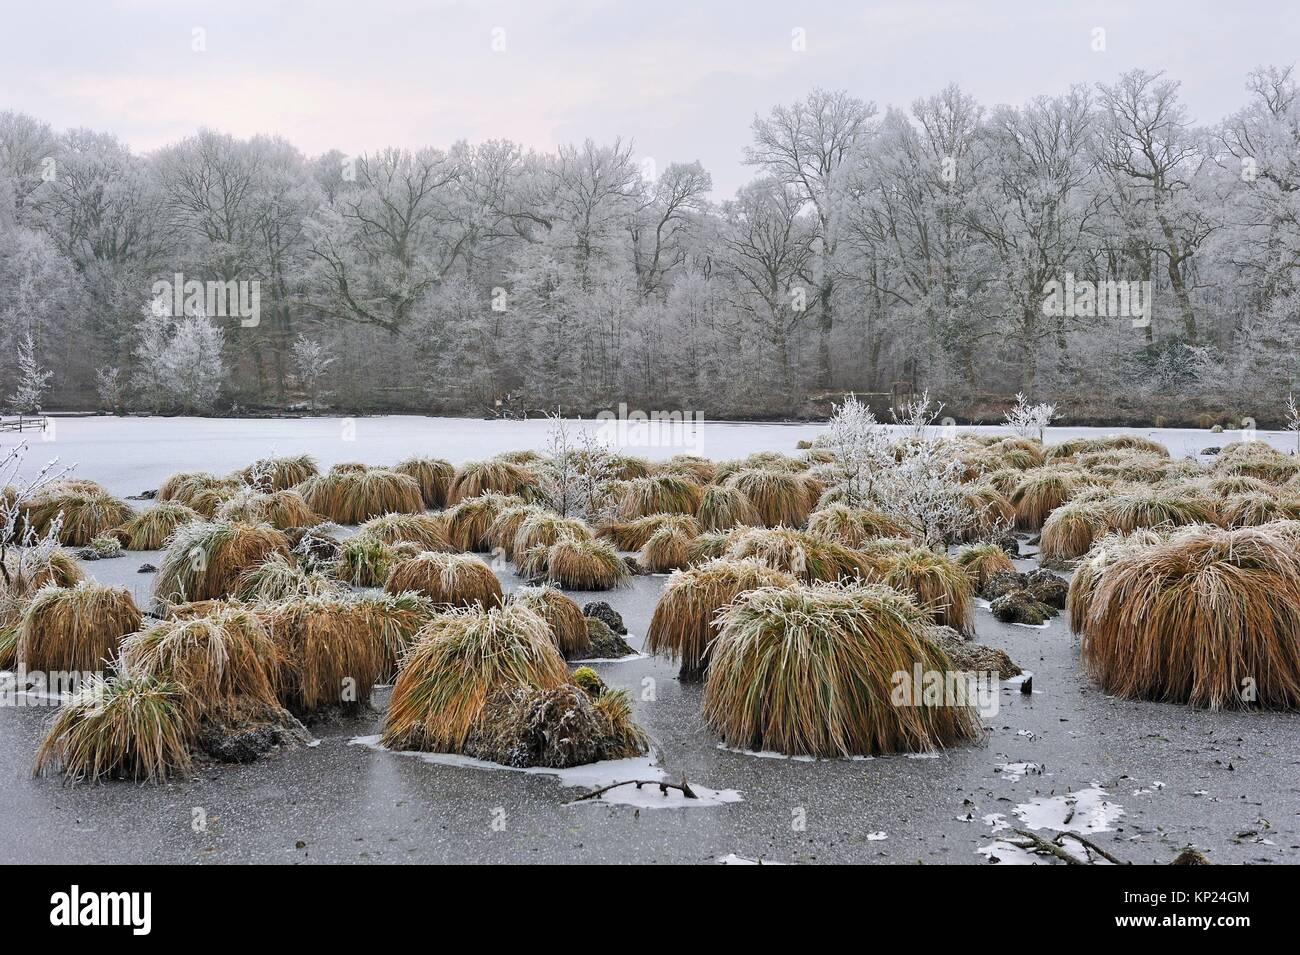 Greater tussok-sedge (Carex paniculata) in the pond of Guiperreux, Forest of Rambouillet, Haute Vallee de Chevreuse - Stock Image